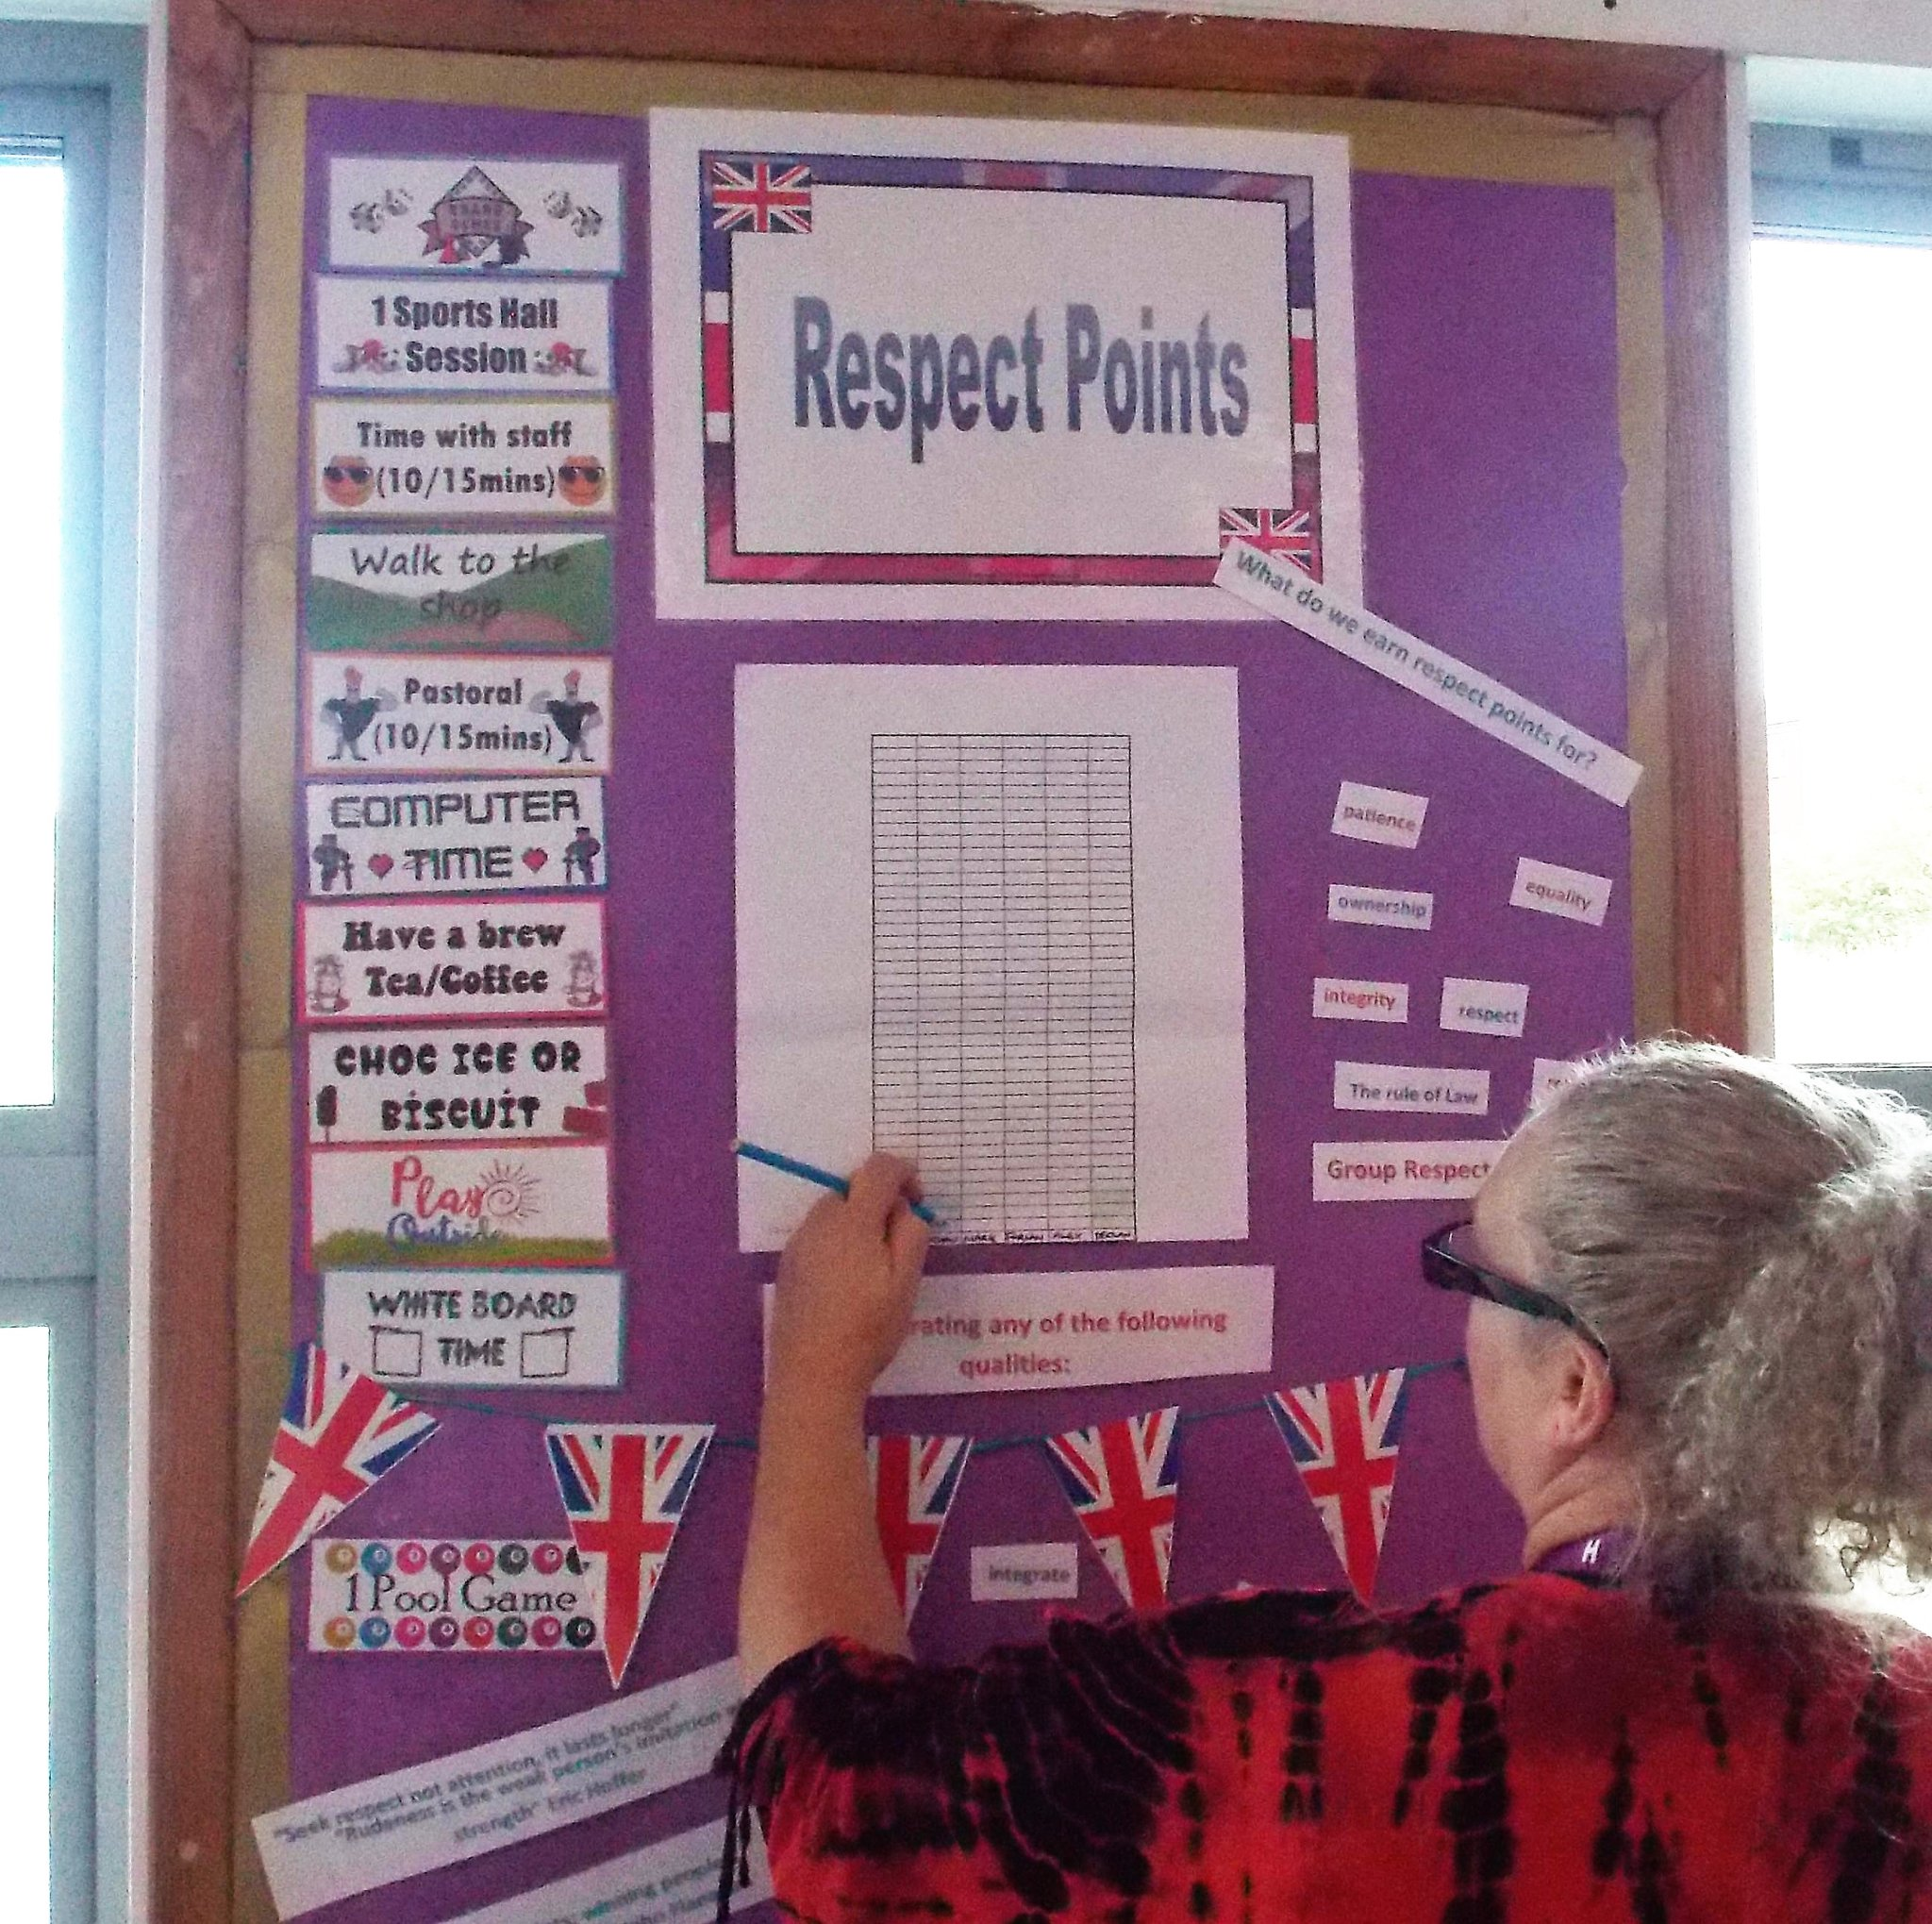 Image show staff member adding respect points to British Values board